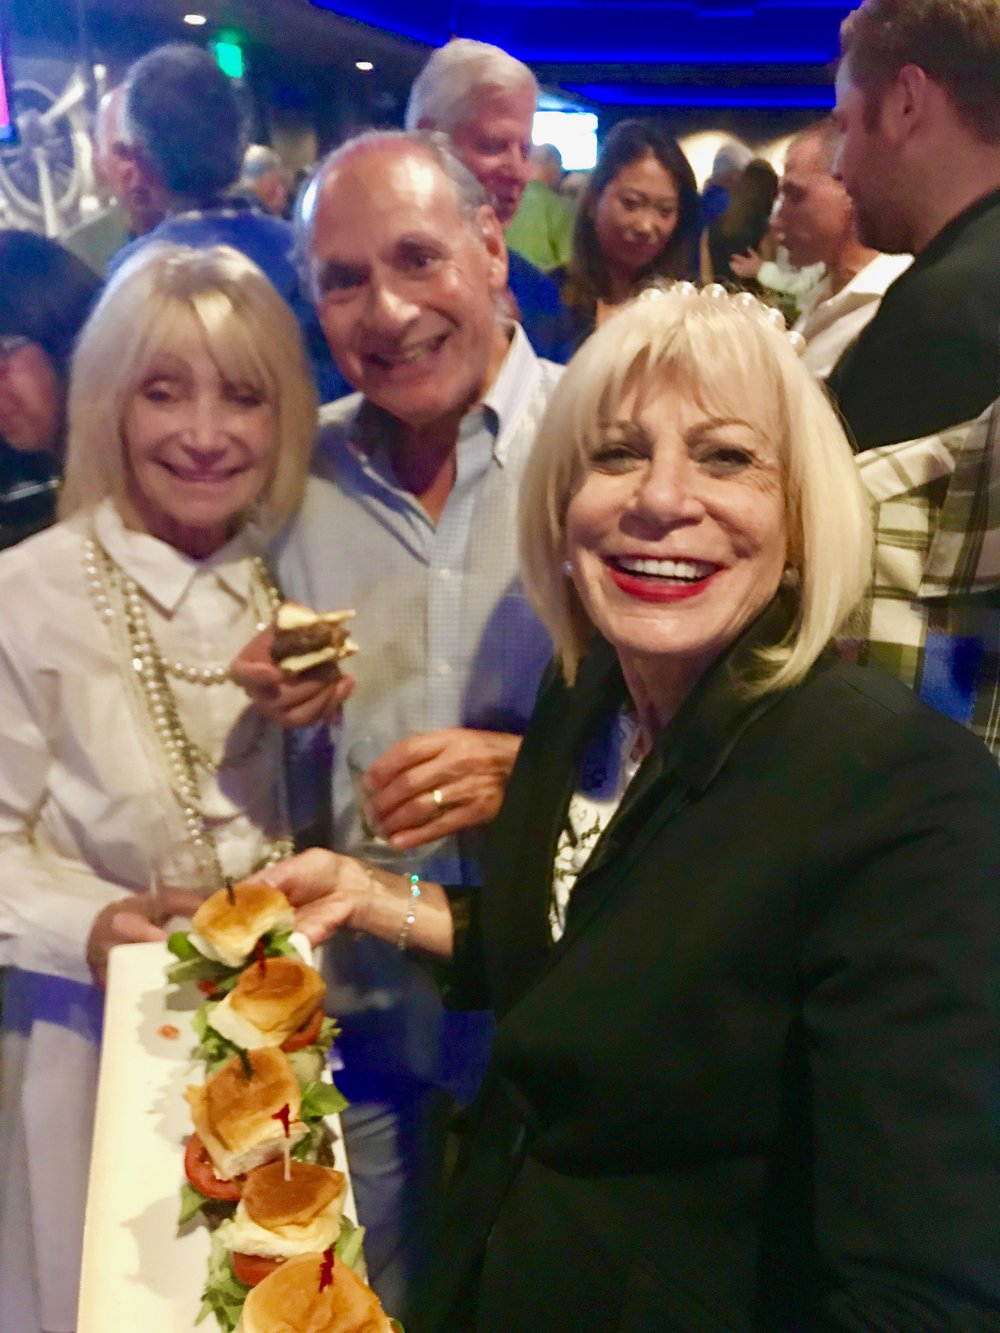 Ruth, Stan and TIna w Vegetarian sliders).jpg*.jpg